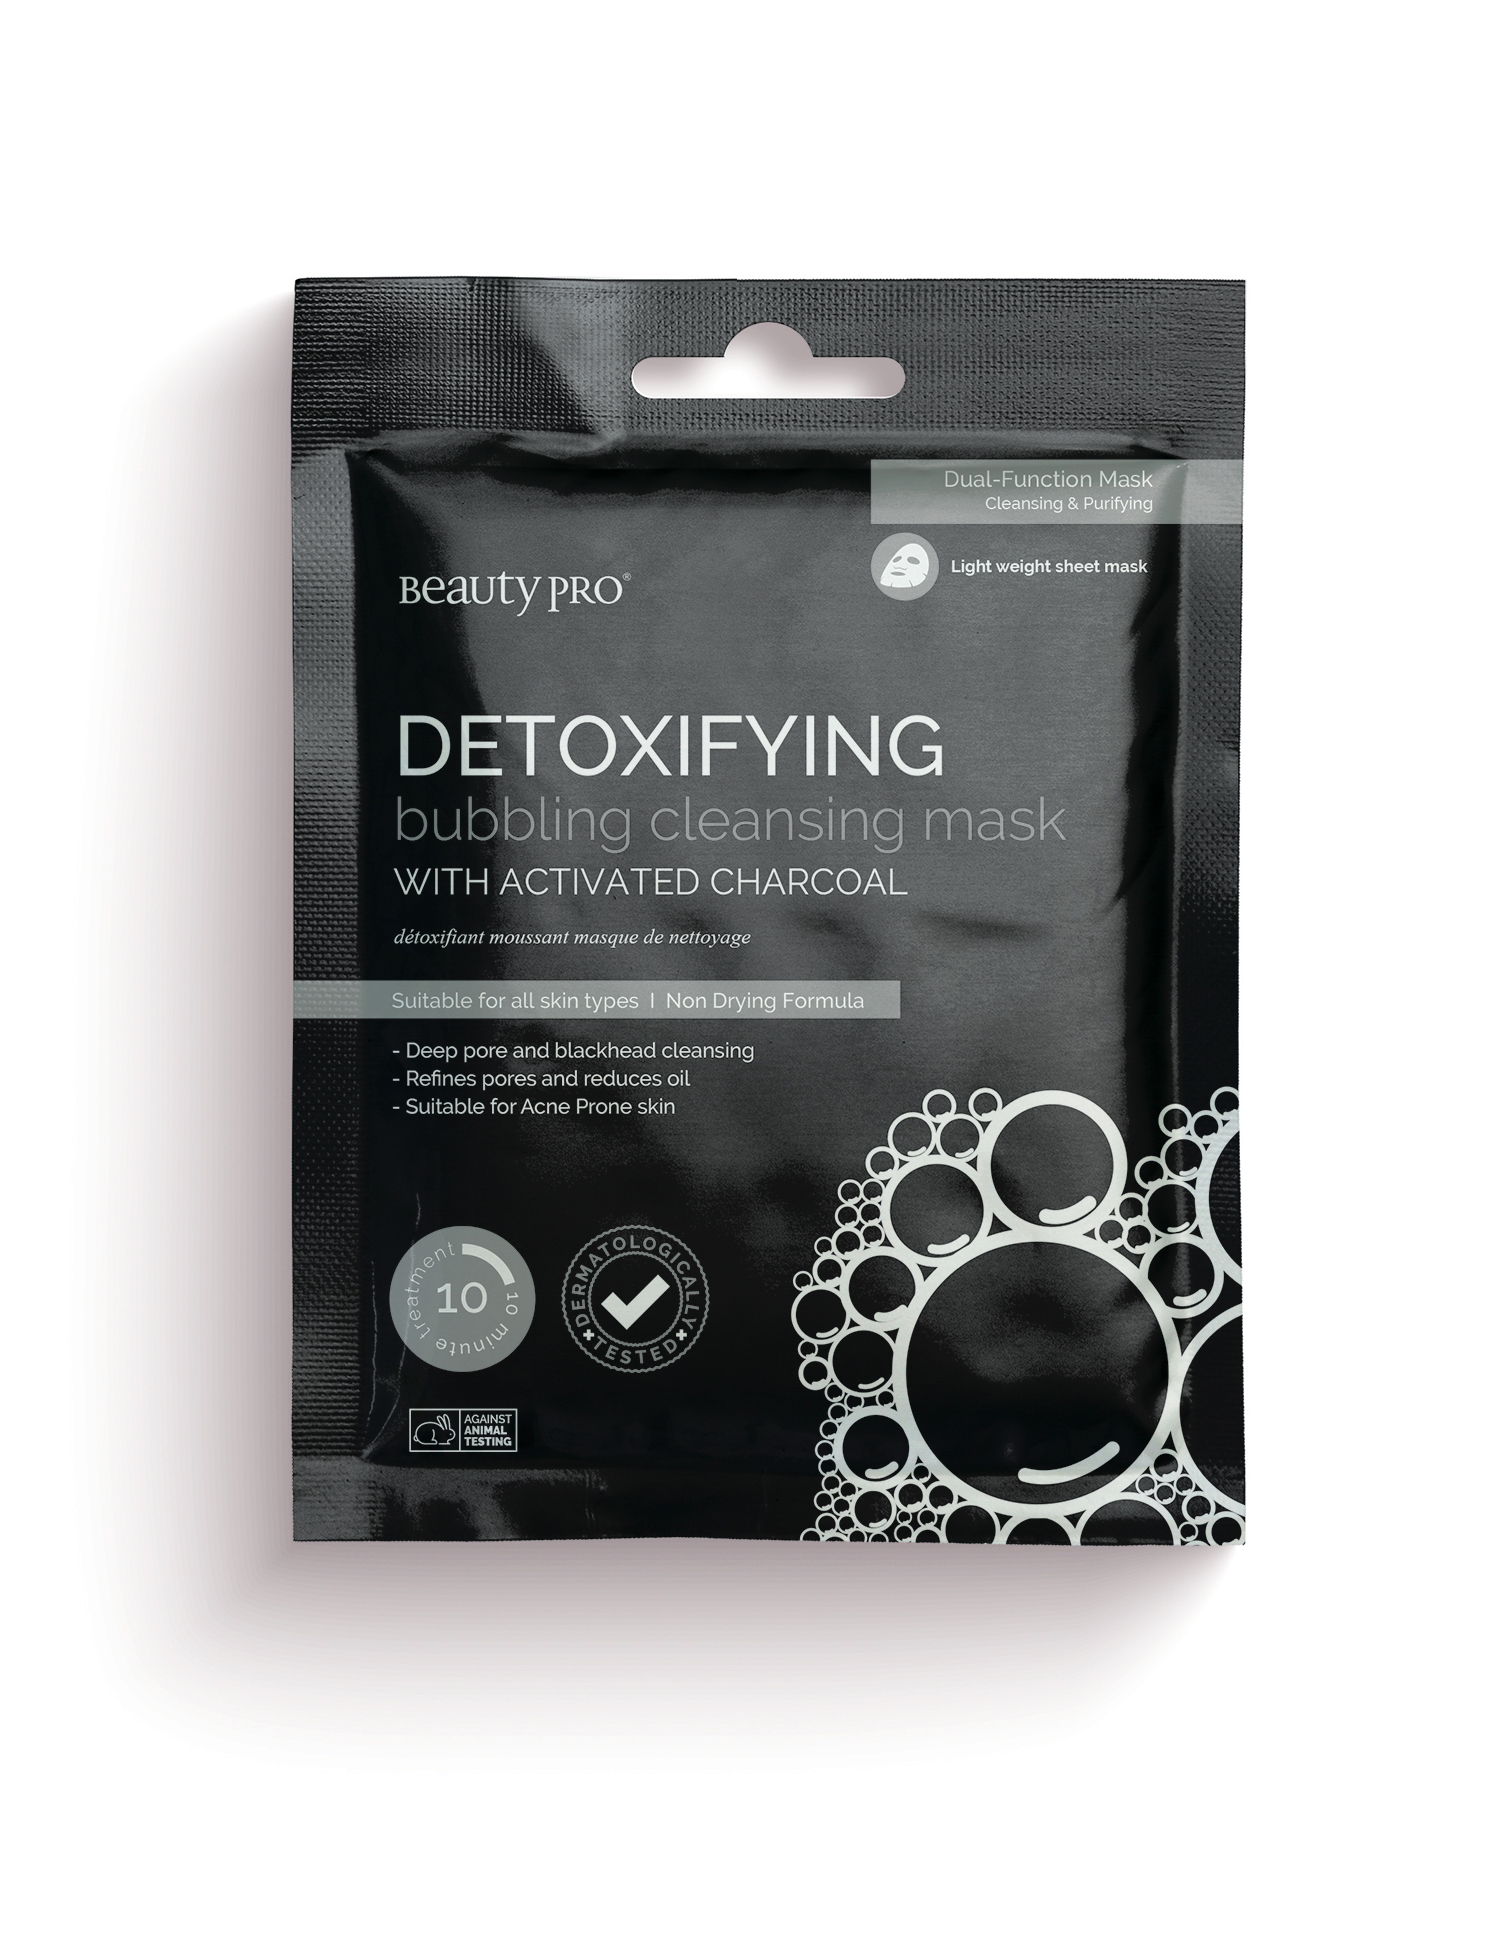 DETOXIFYING Bubbling Cleansing Mask with Activated Charcoal 18ml